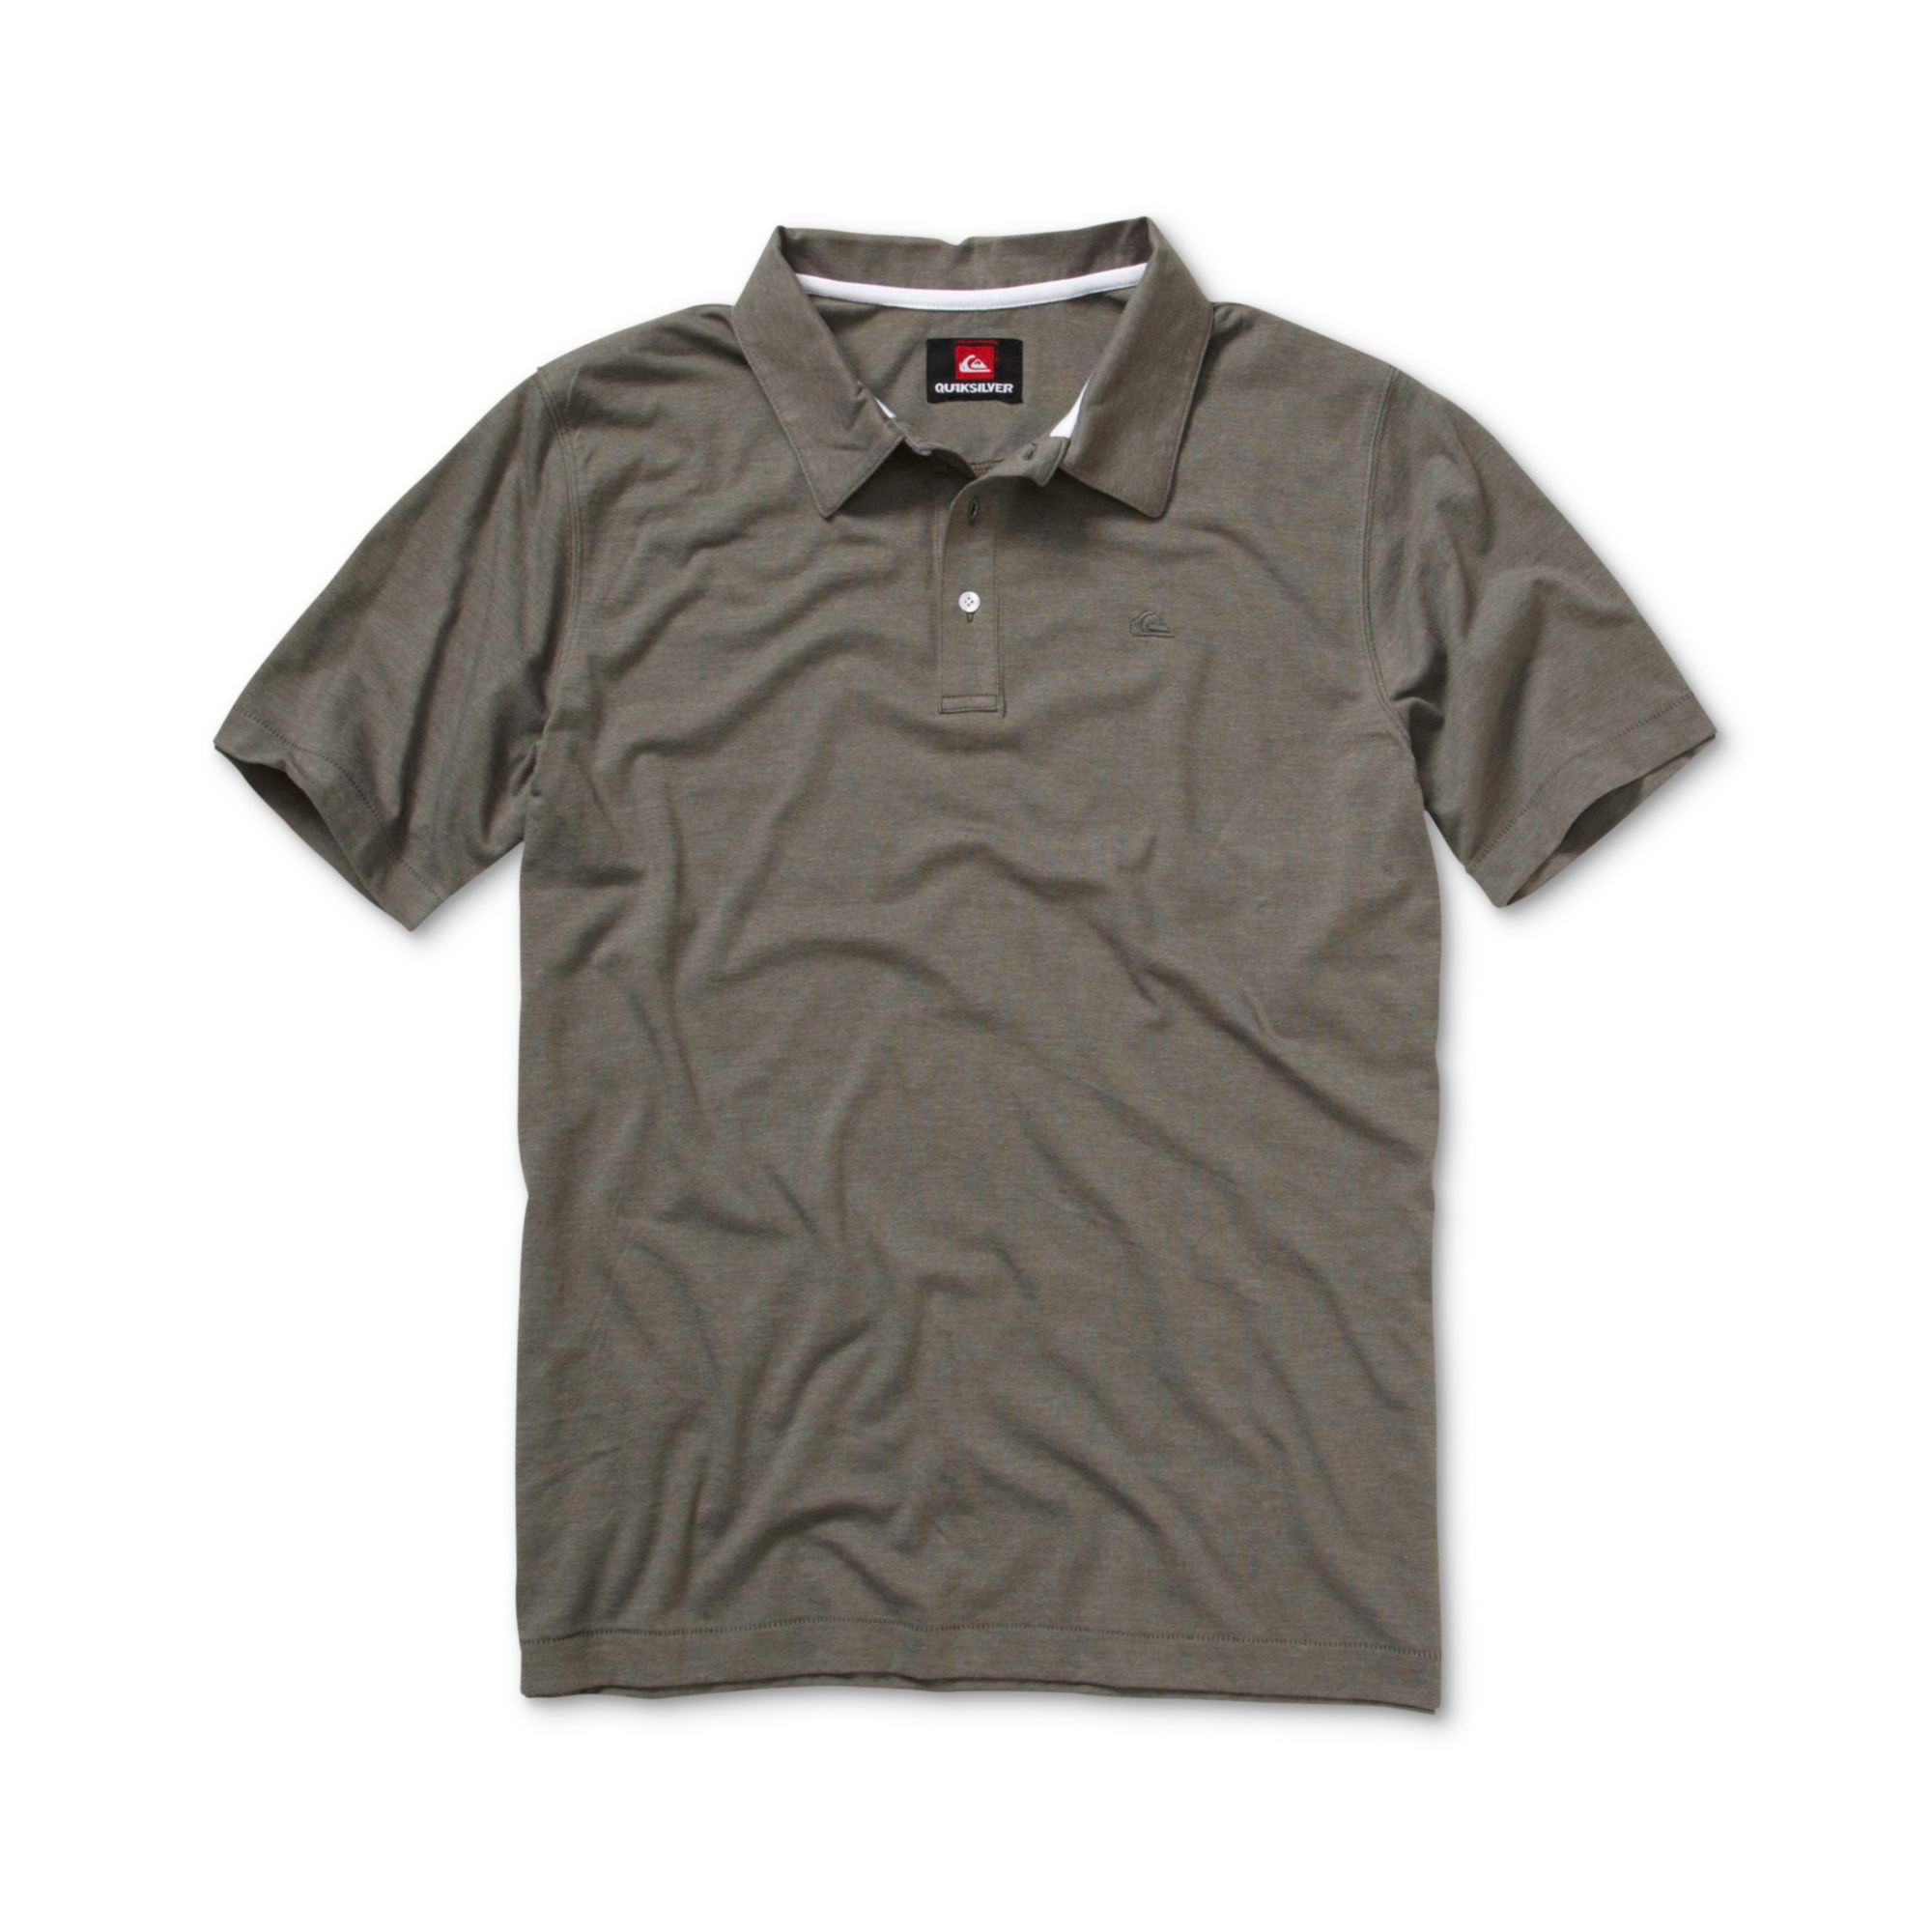 Quiksilver Sea Port Short Sleeve Polo Shirt In Gray For